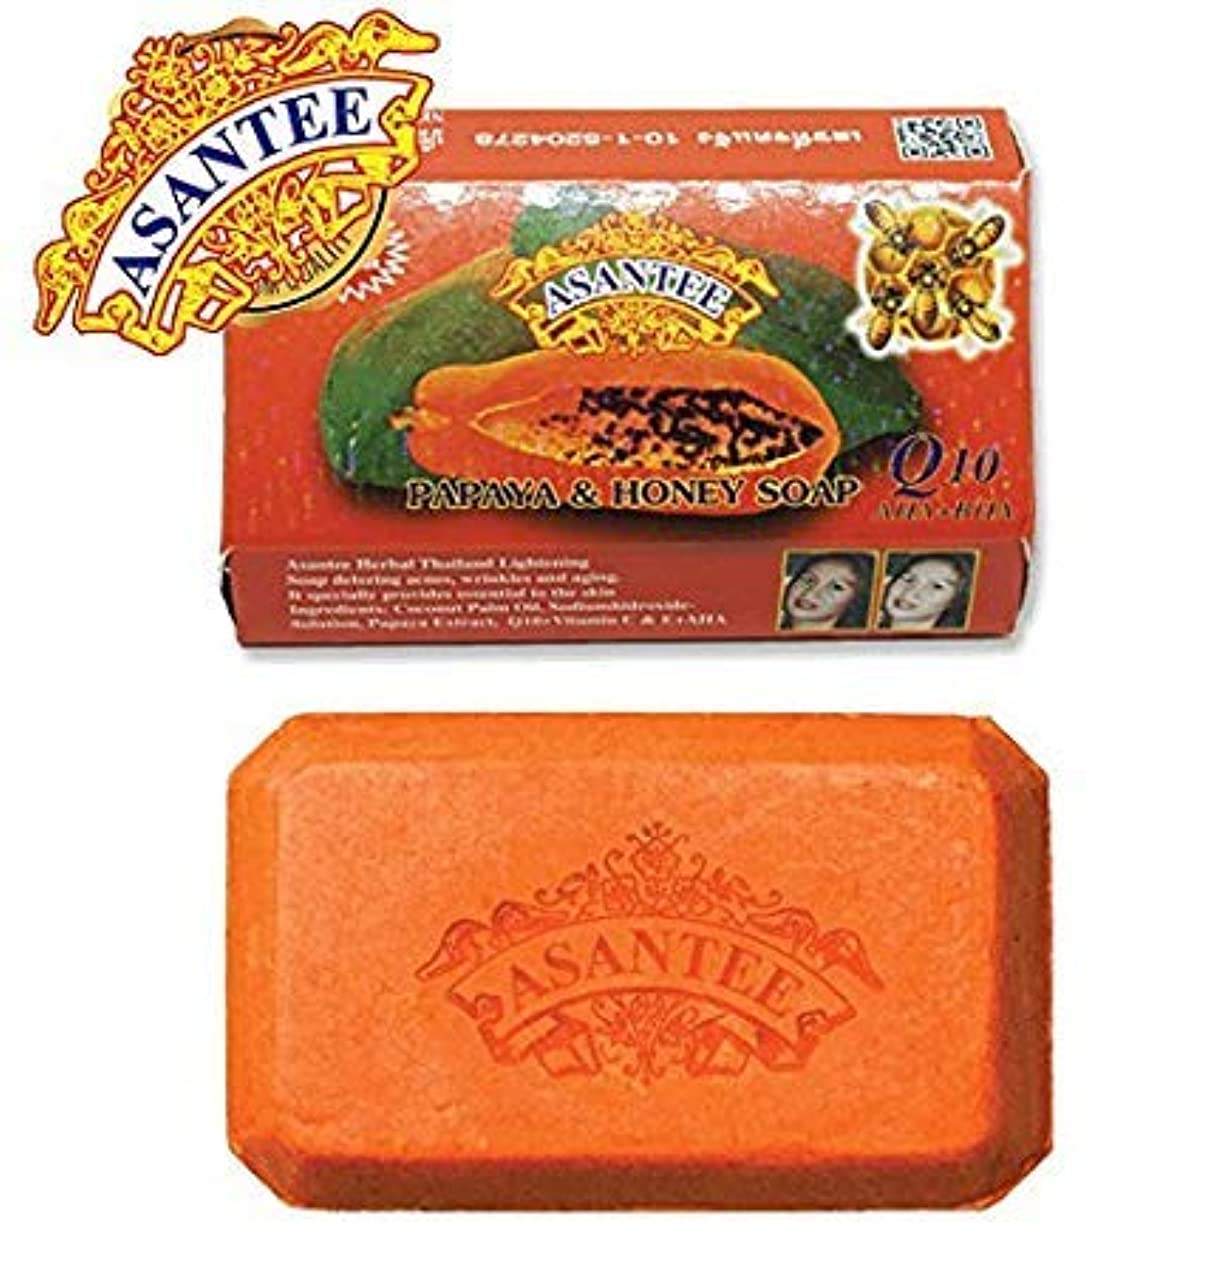 ビリーヤギ接続されたチケットAsantee Thai Papaya Herbal Skin Whitening Soap 135g (1 pcs)